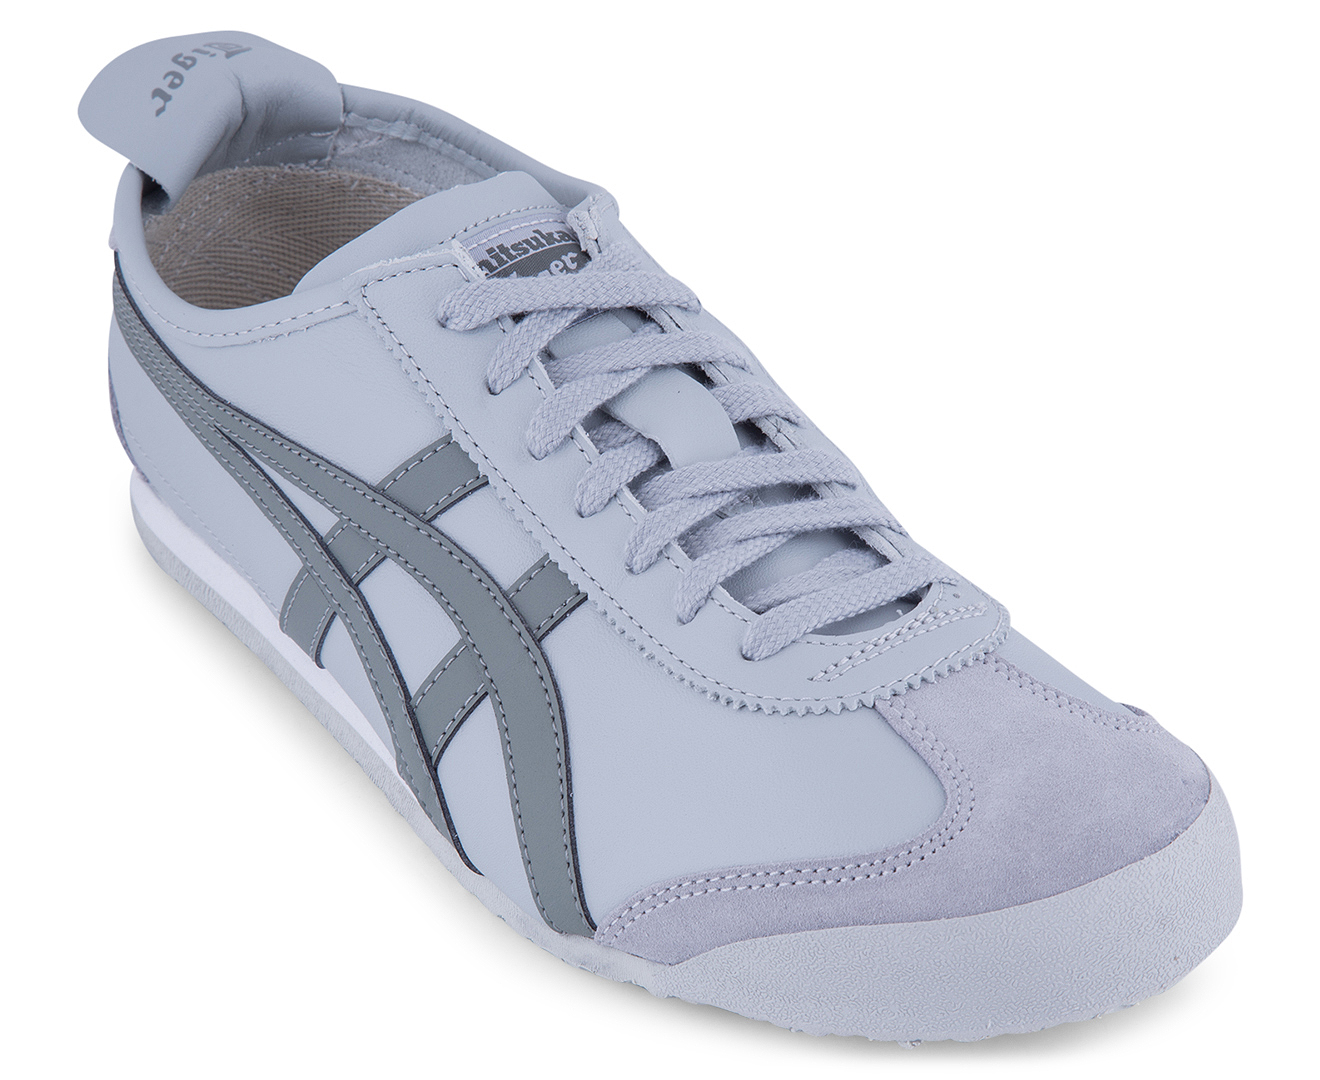 new style 45e4f 954e7 Onitsuka Tiger Mexico 66 Leather Shoe - Midgrey/Agave Green